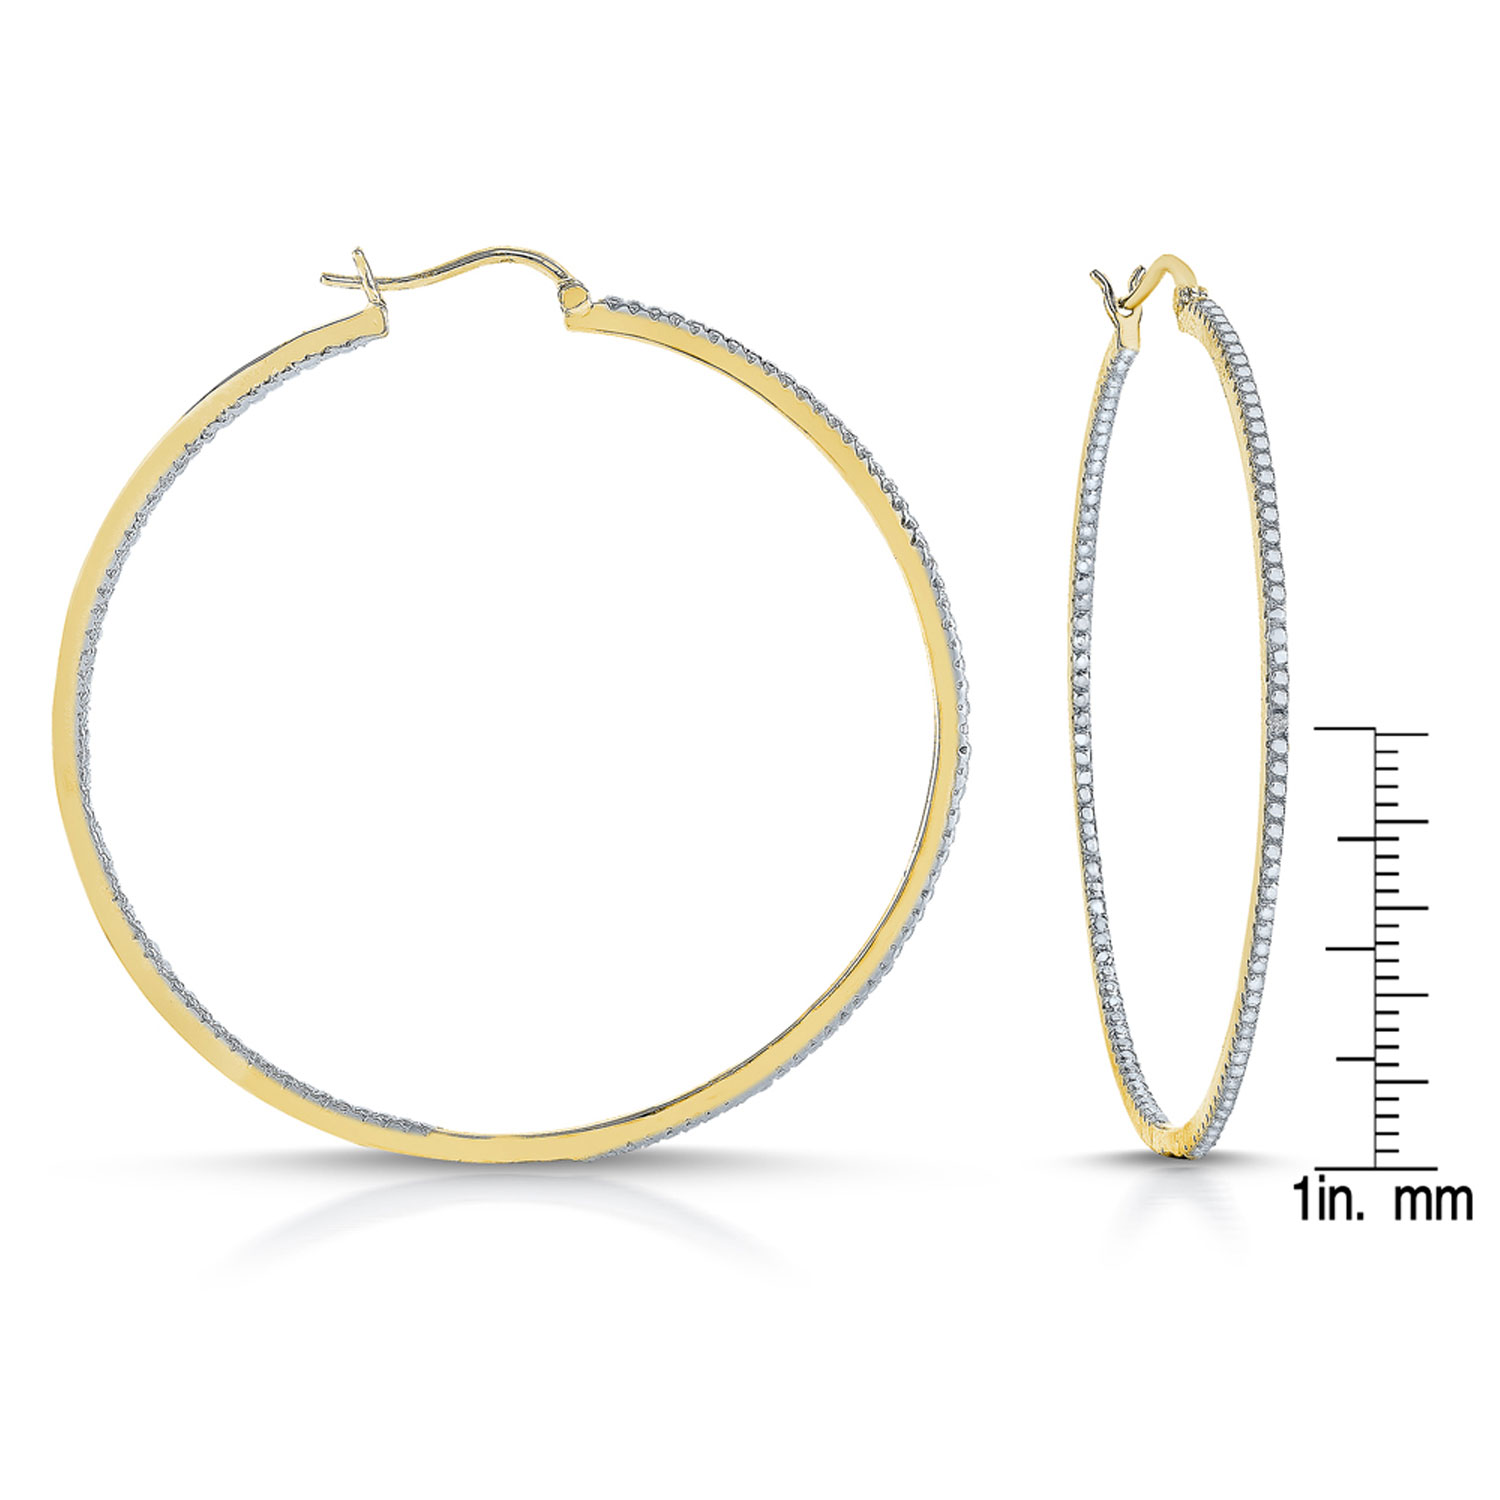 Gold Plated Base Metal Hoop Earrings With Stone Accents